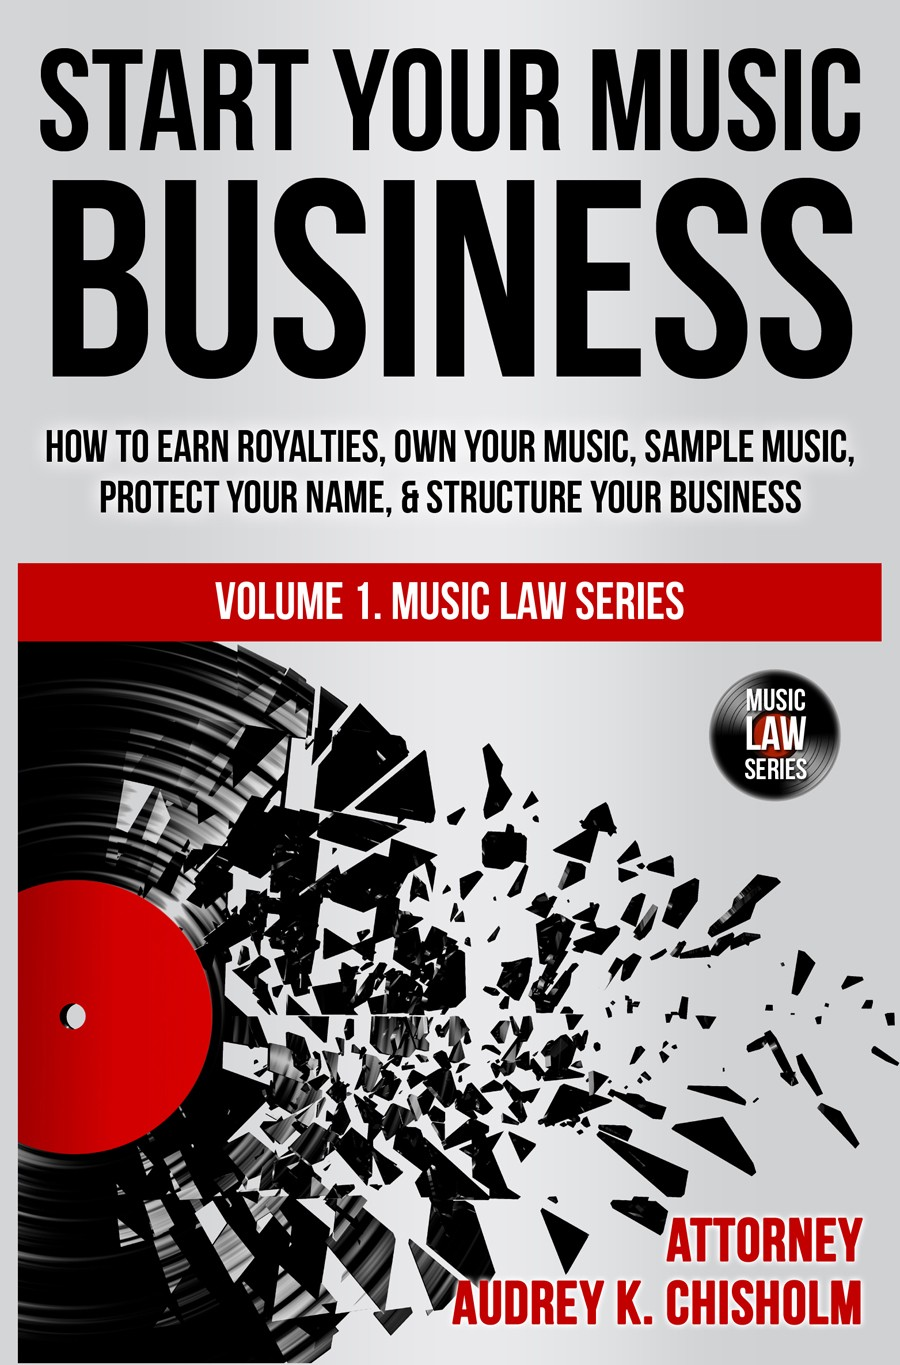 Start Your Music Business Book Cover